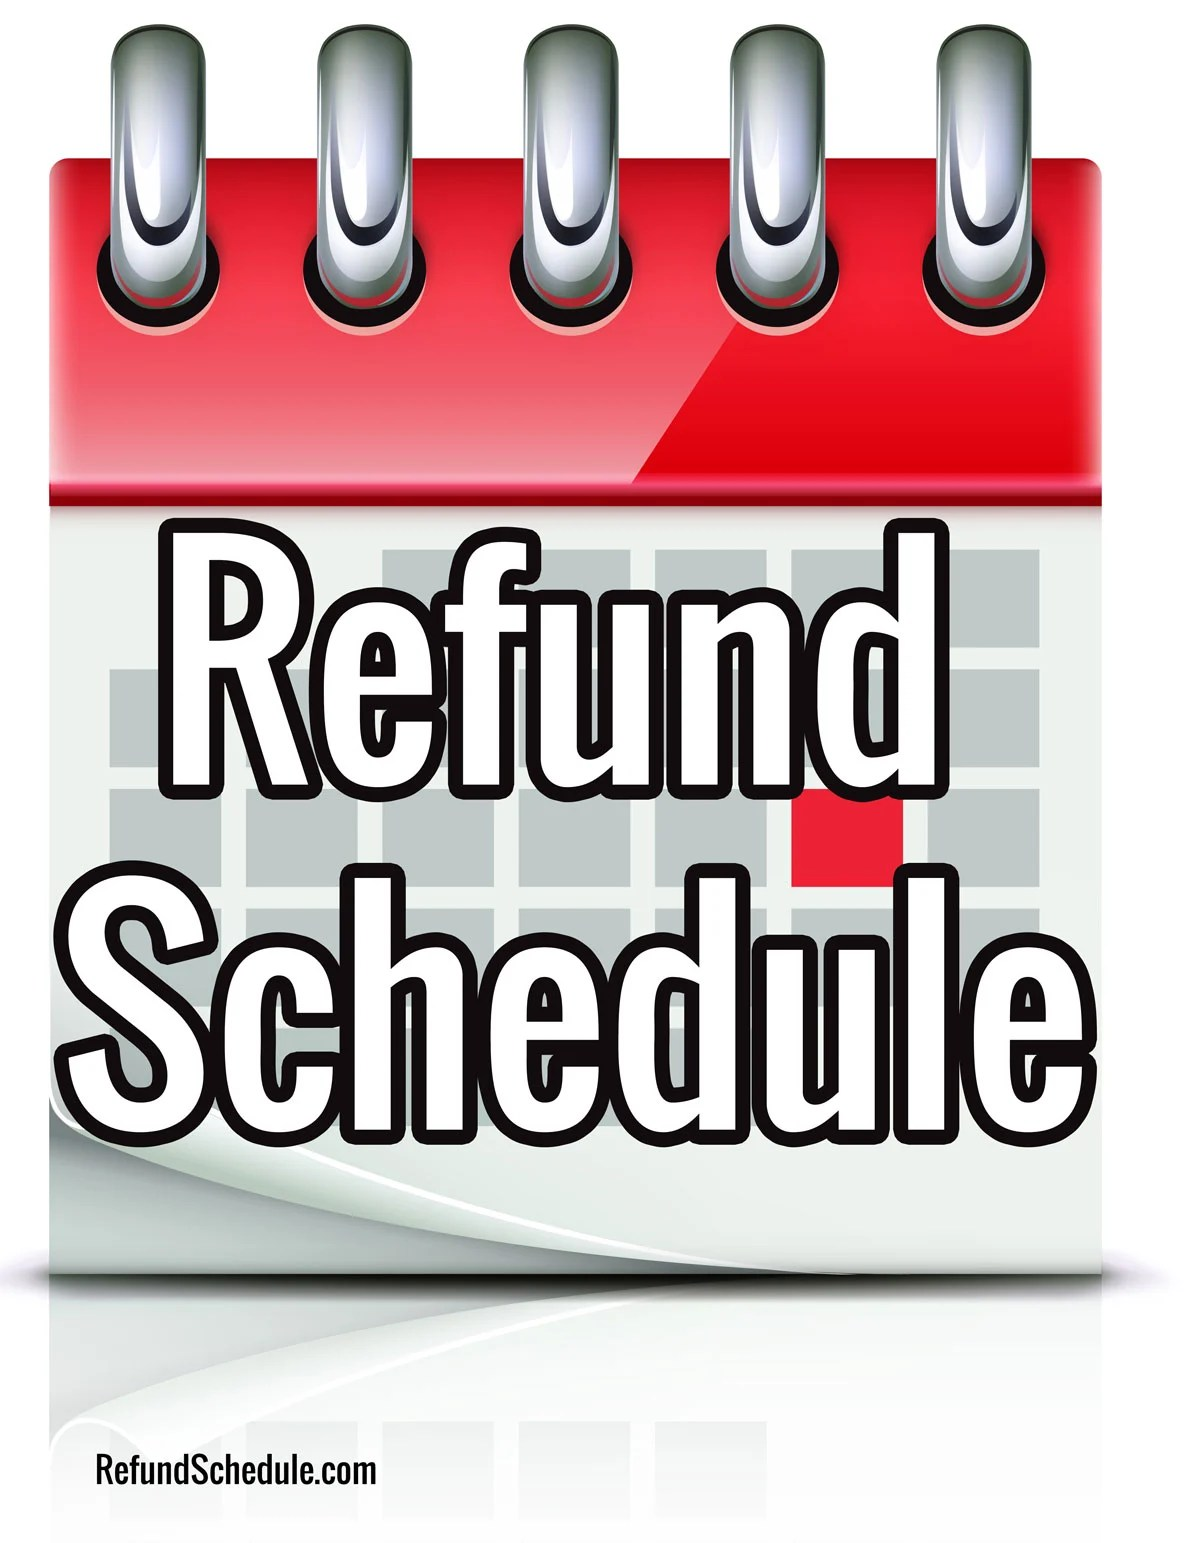 Irs Refund Schedule Refund Cycle Chart For E File Tax Return